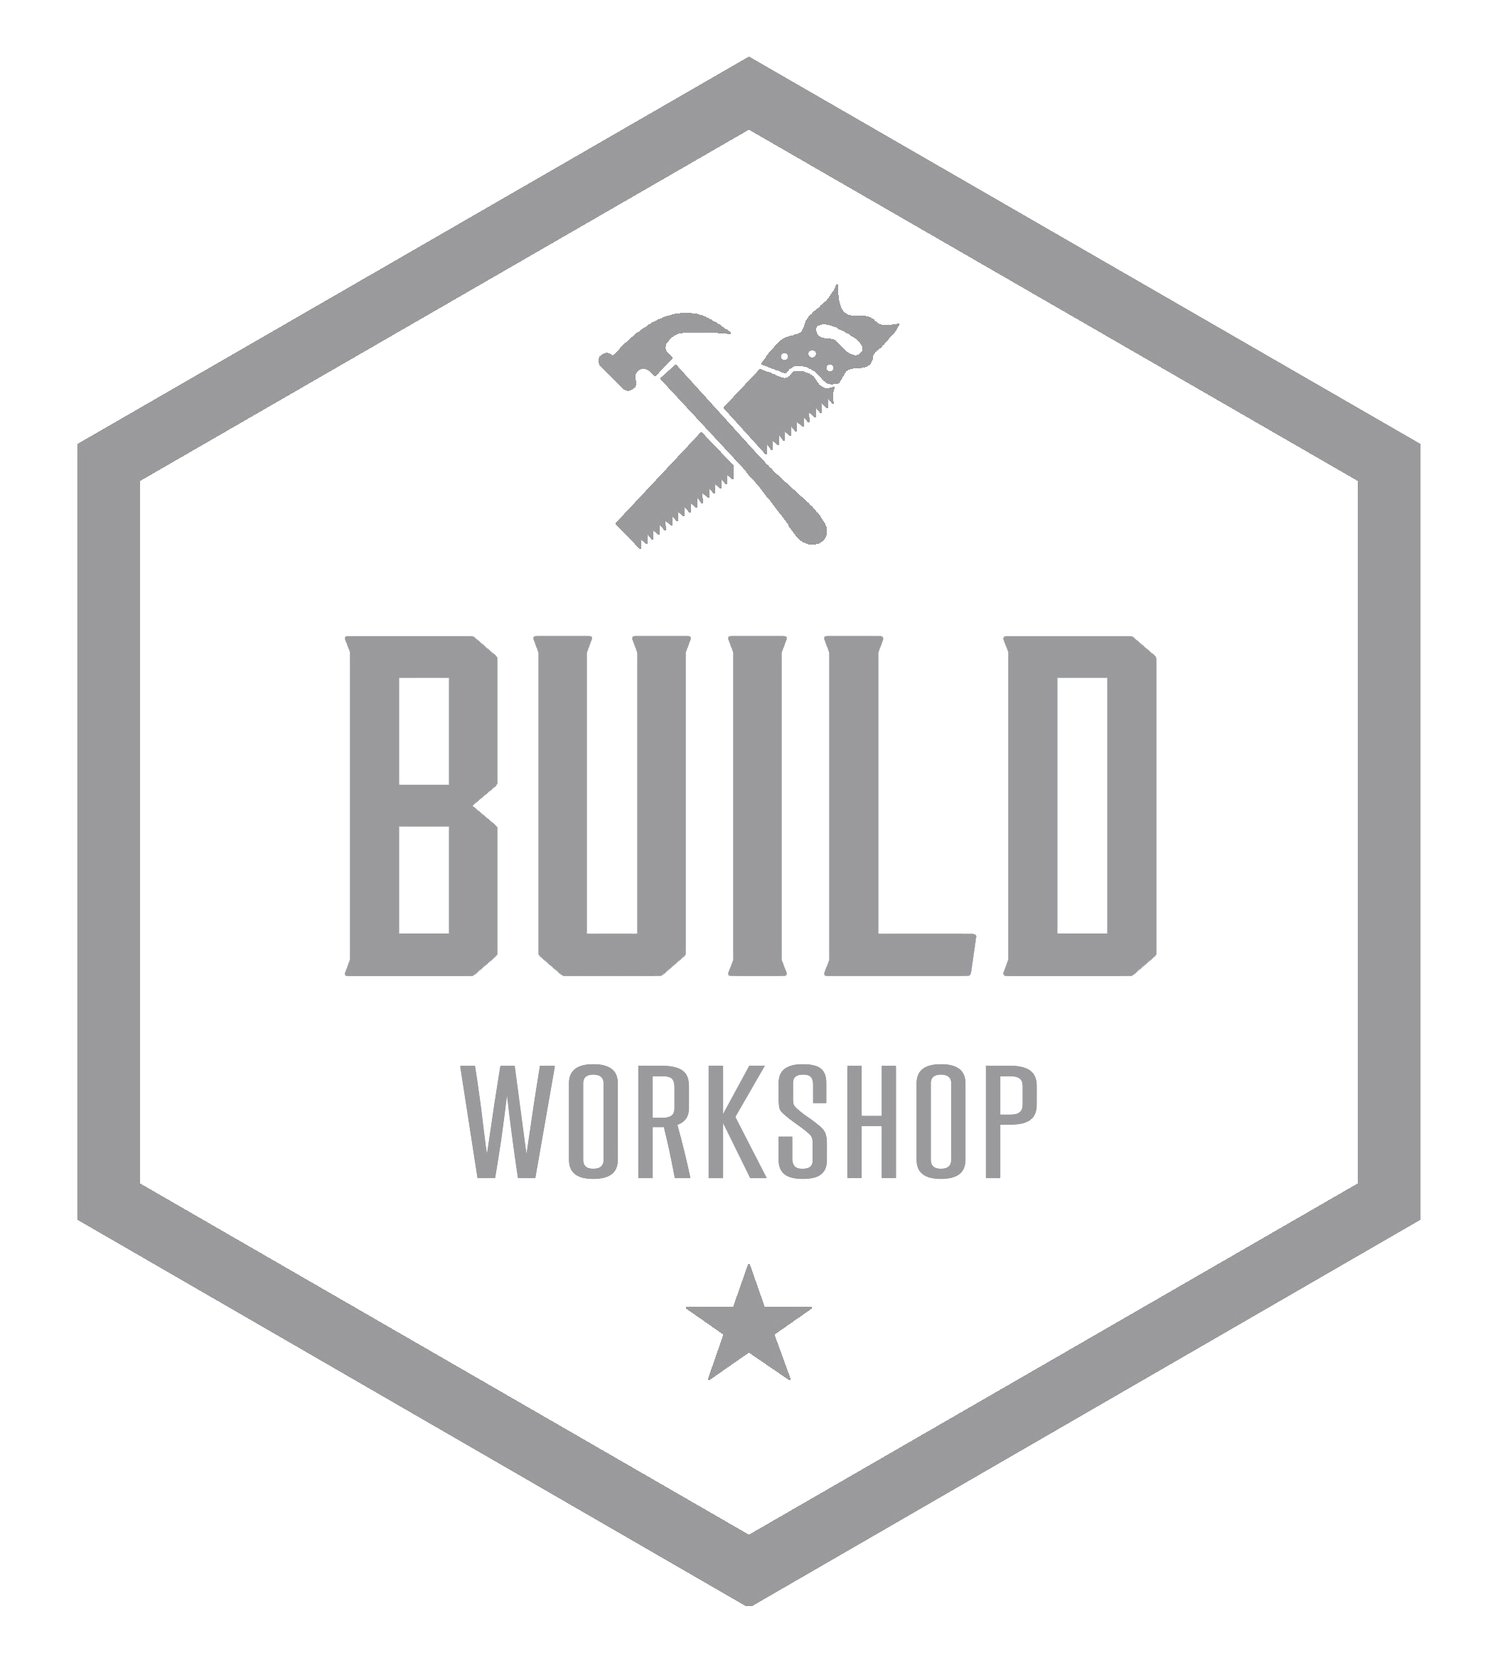 BUILD Workshop